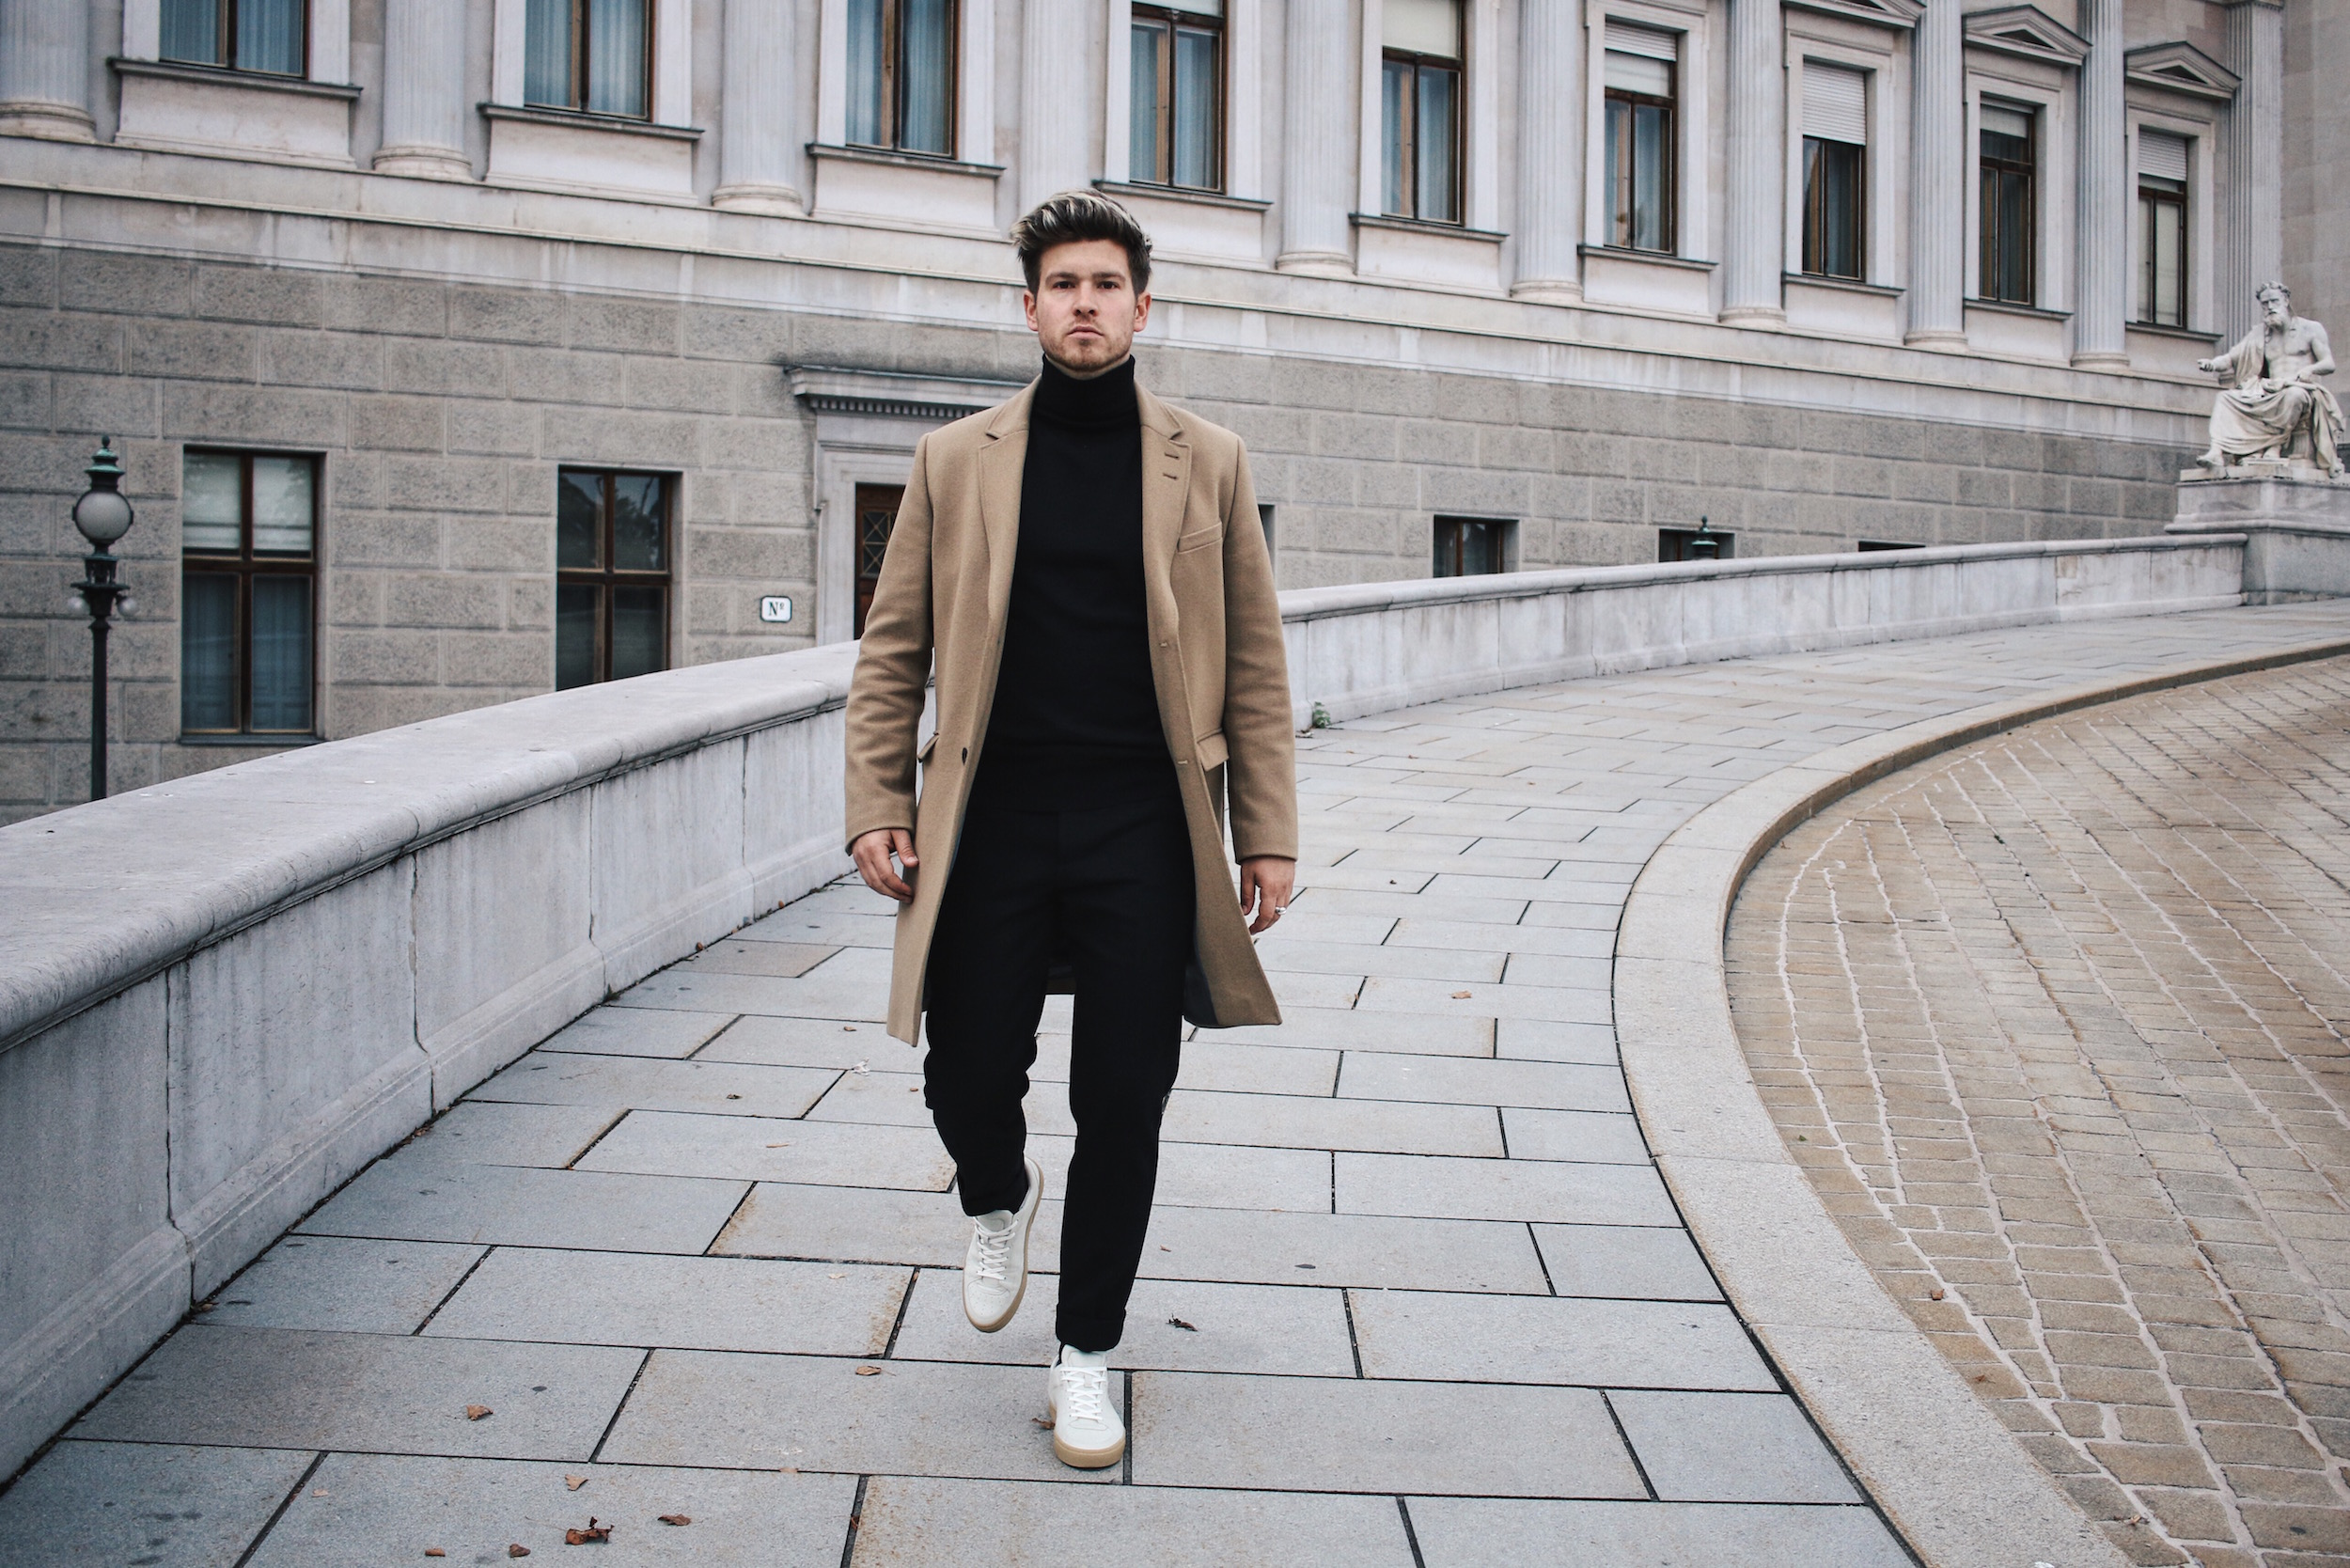 Tiger of Sweden Camel Coat_Turtleneck Sweater_All Black_VOR Shoes_Outfit by Meanwhile in Awesometown_Austrian Mens Fashion and Lifestyle Blogger